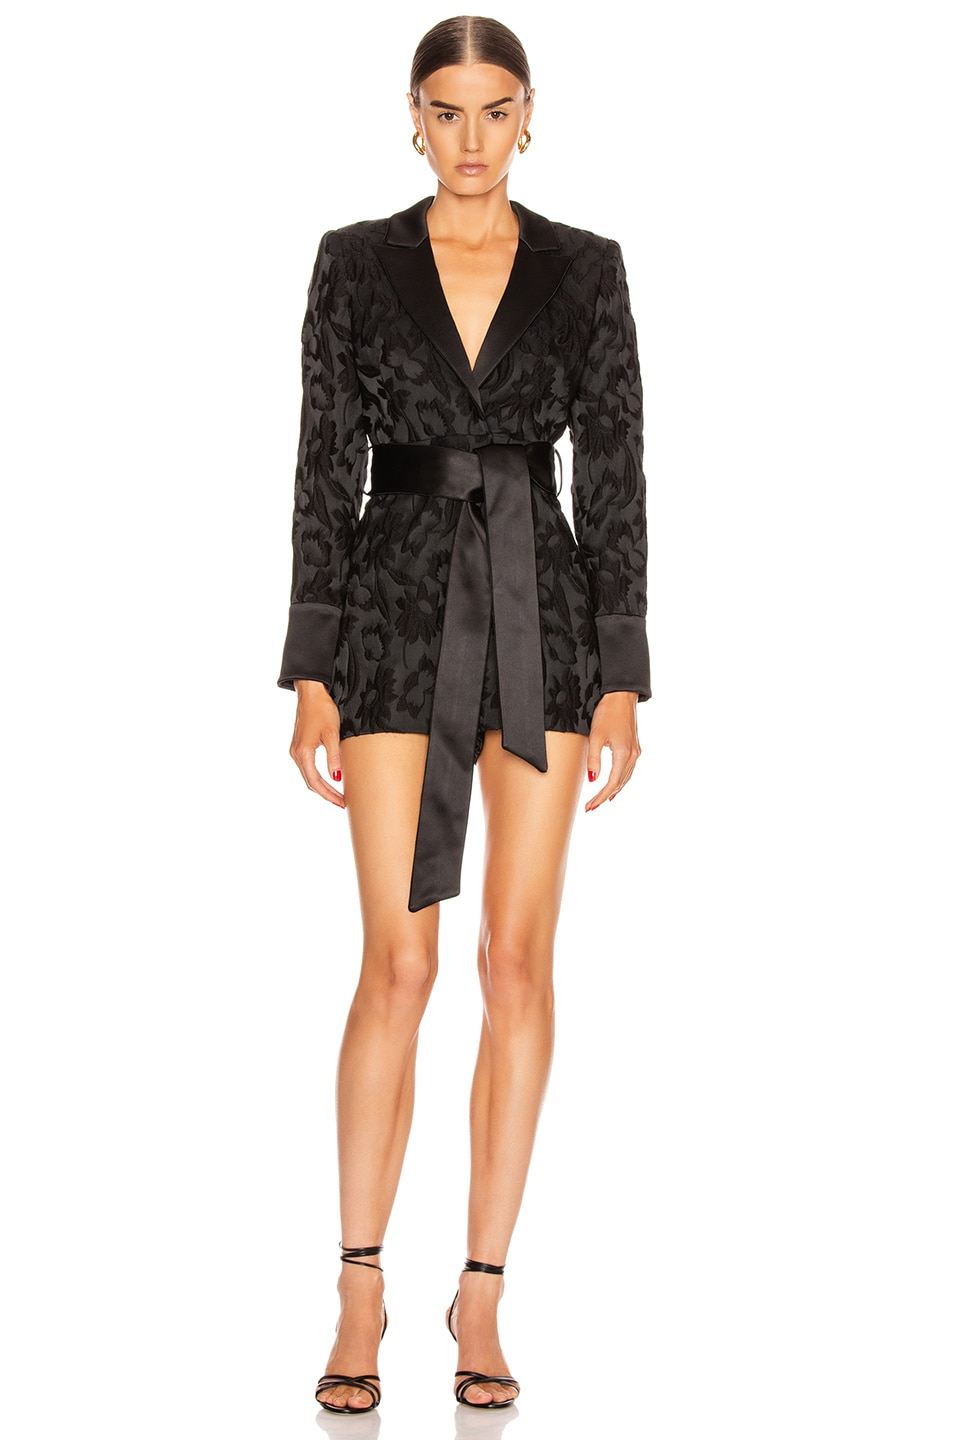 Image 1 of Alexis Ashling Romper in Black Floral Jacquard